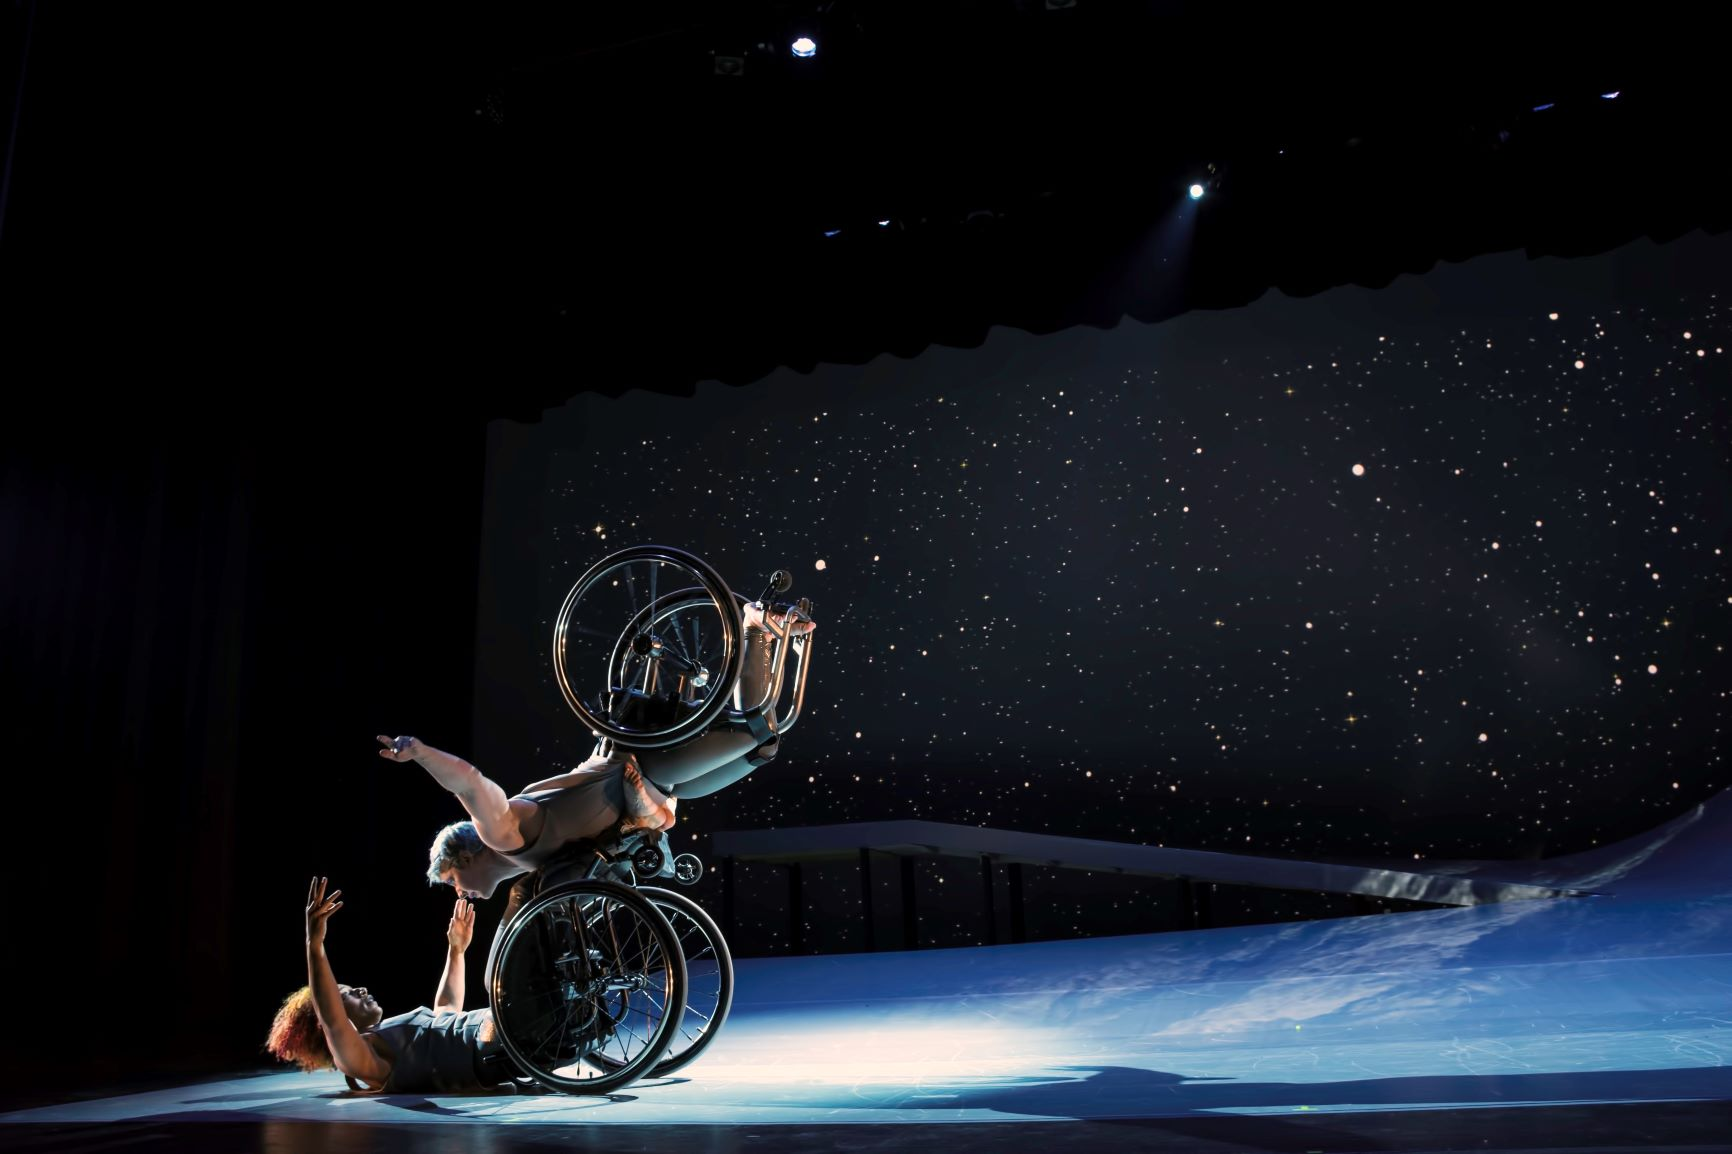 Laurel Lawson, a white woman, balances on the footplate of Alice Sheppard's wheelchair, with arms spread wide, wheels spinning. Alice, a light-skinned Black woman, opens her arms wide to receive her in an embrace. They make eye contact and smile. A starry sky fills the background, and moonlight glints off their rims. Photo: BRITT / Jay Newman